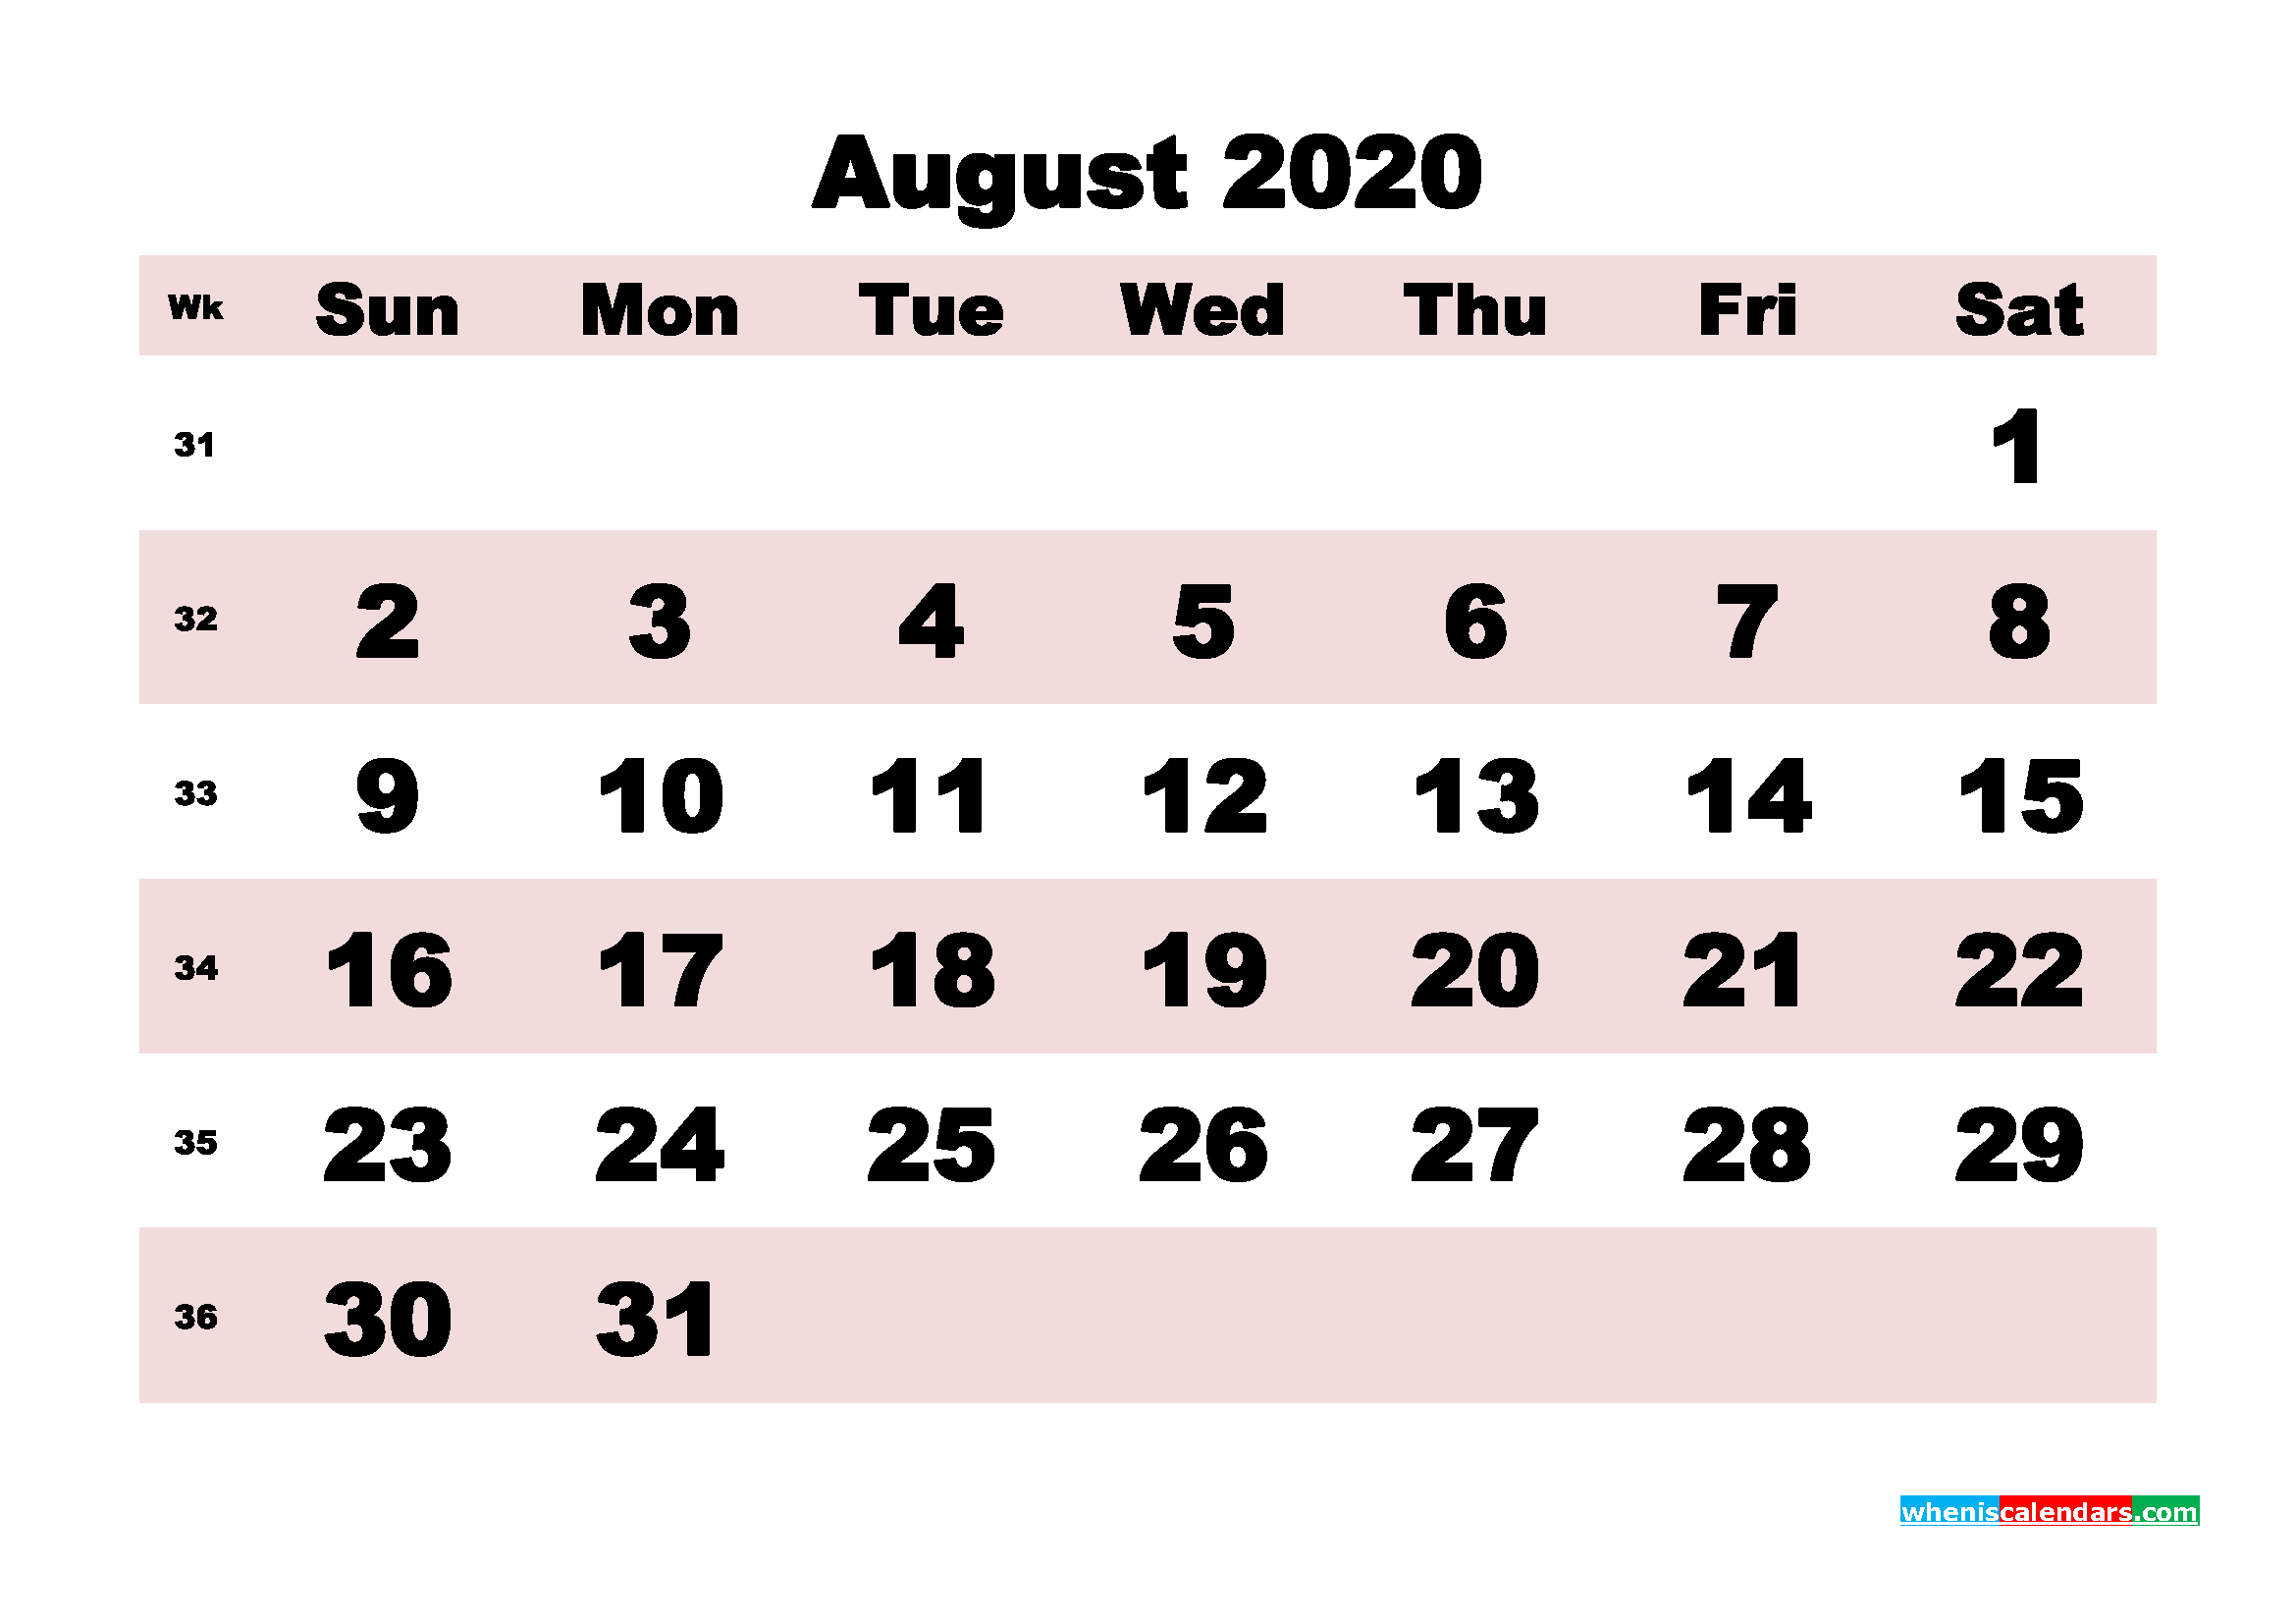 Printable Monthly Calendar 2020 August with Week Numbers